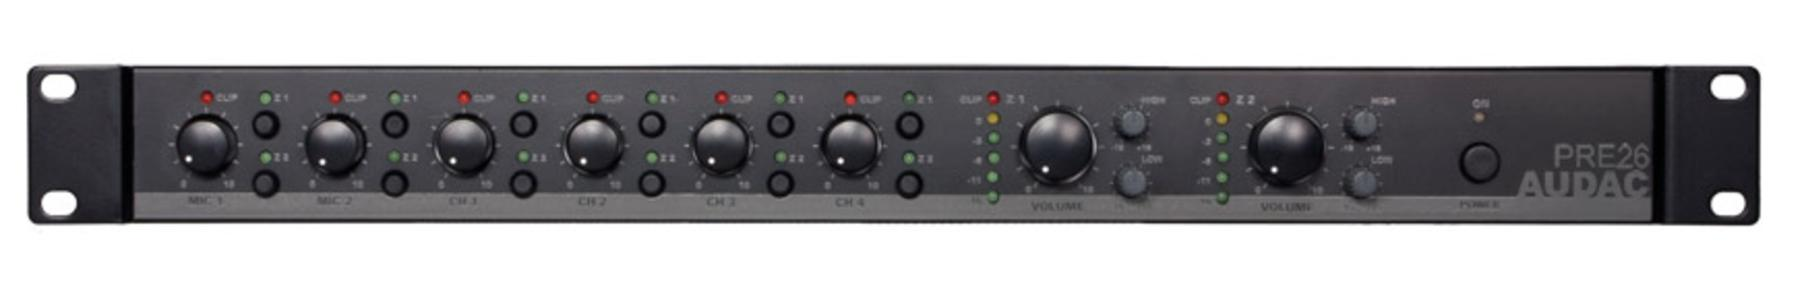 Audac PRE26 - Mixer rack 6 ingressi, 2 zone output